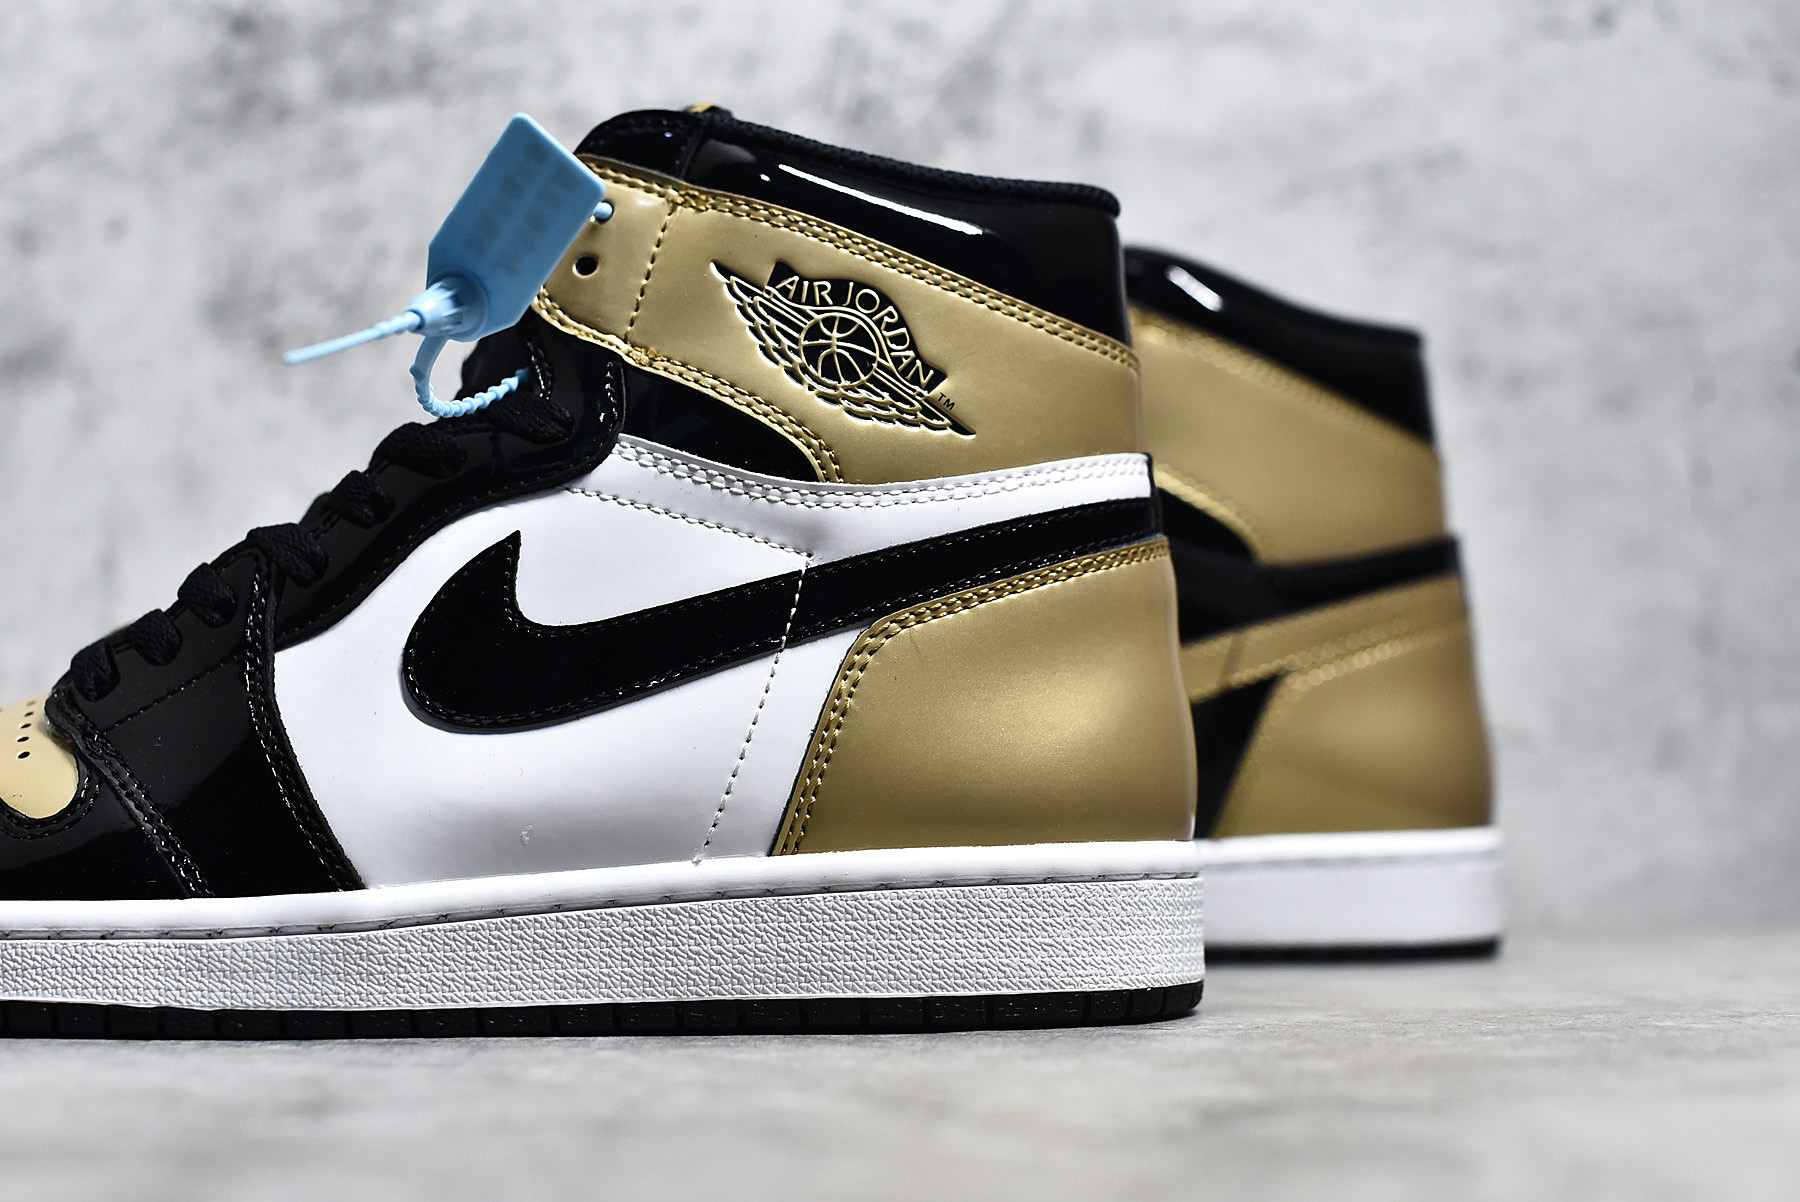 Authentic Air Jordan 1 Gold Toe One of One